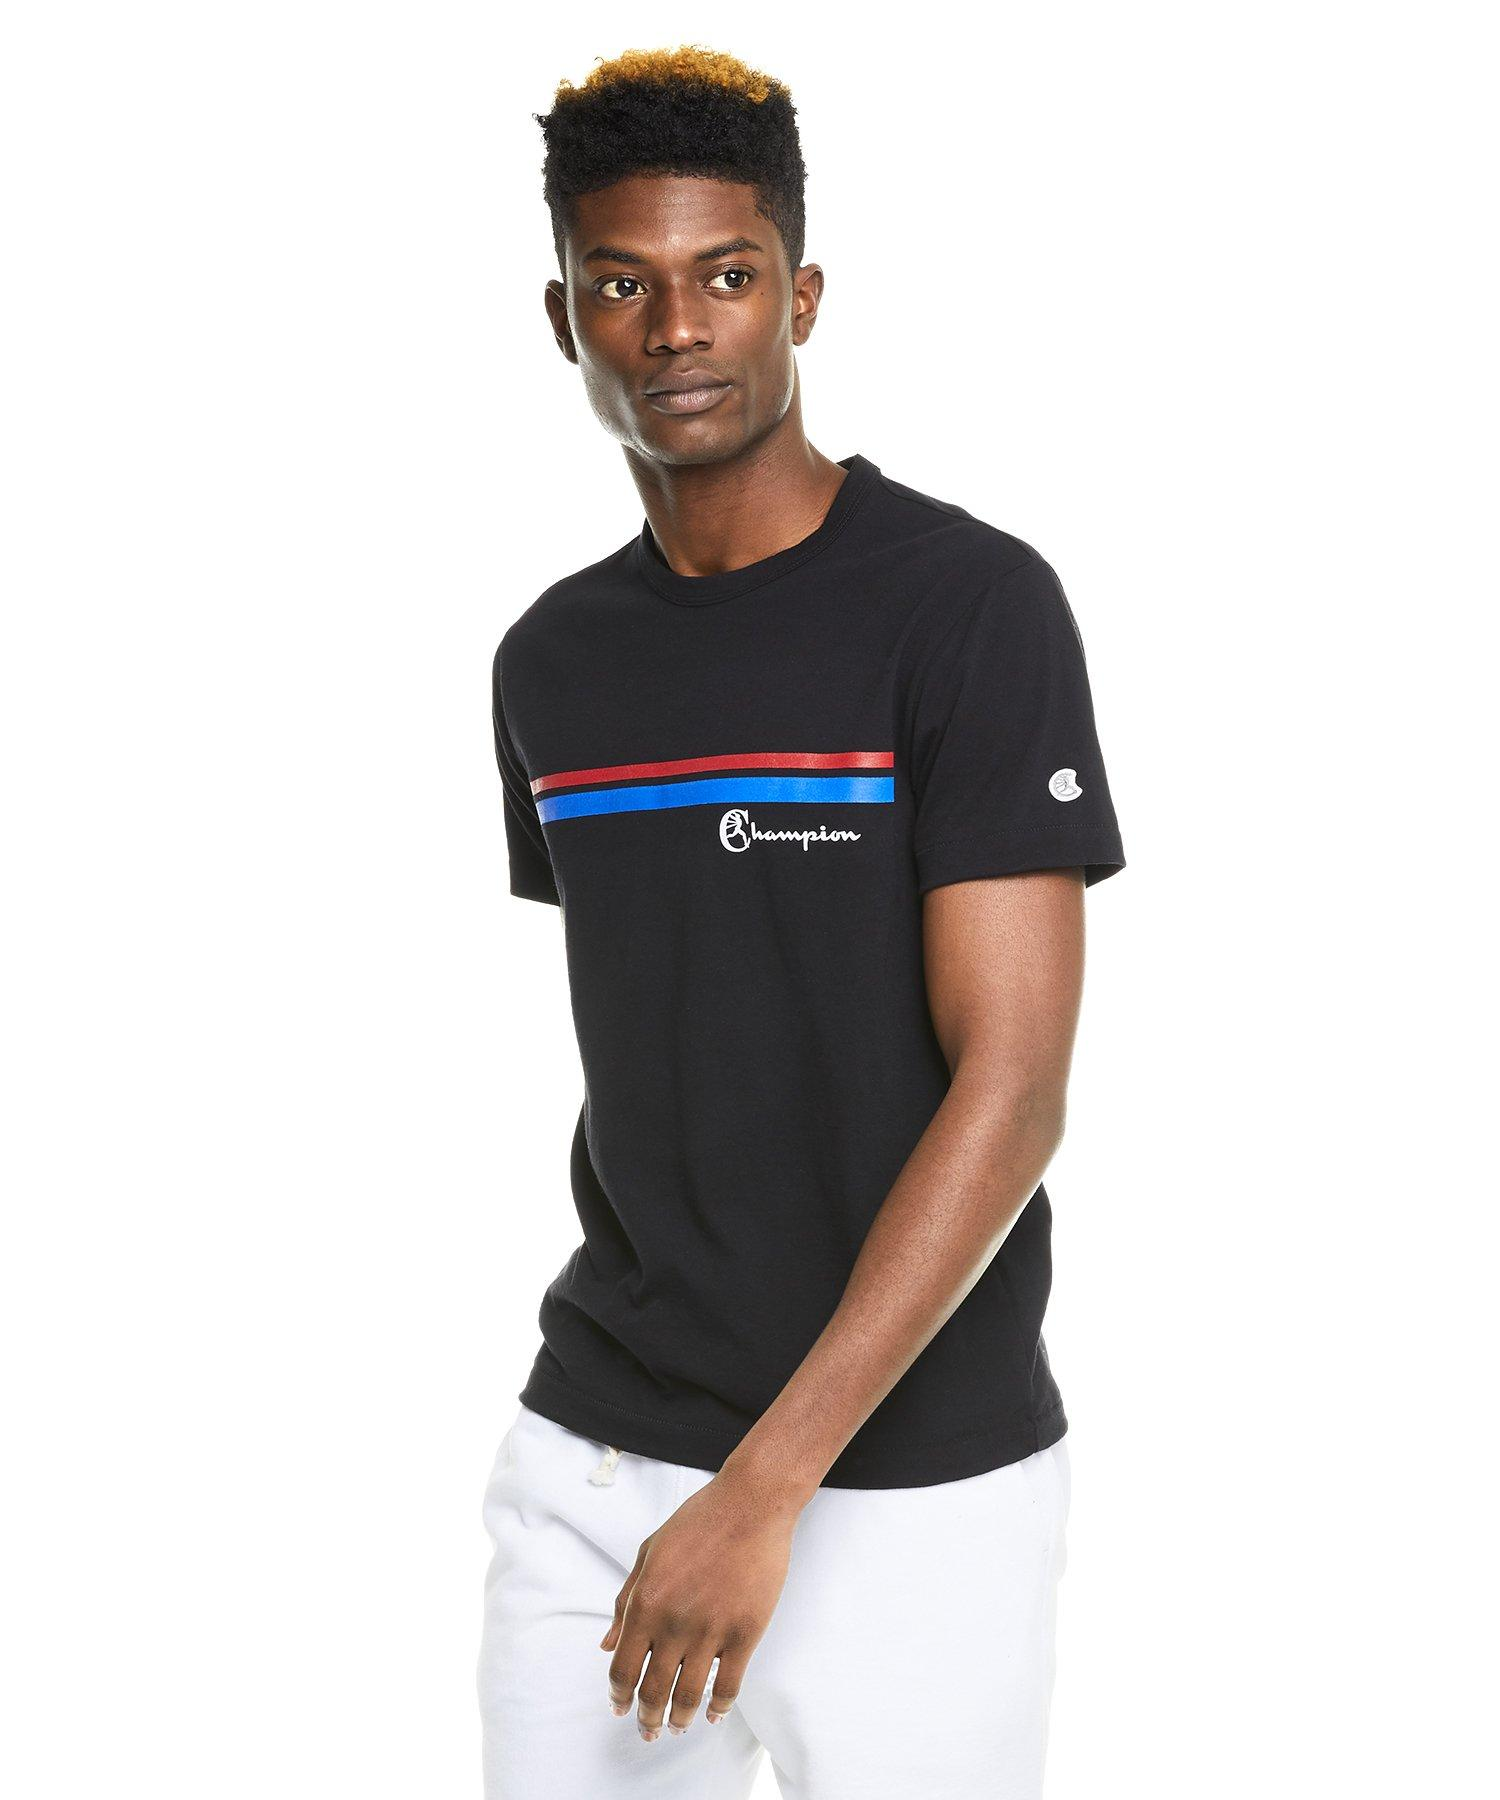 7cb4073f Todd Snyder Champion Double Stripe Graphic T-shirt In Black in Black for  Men - Lyst